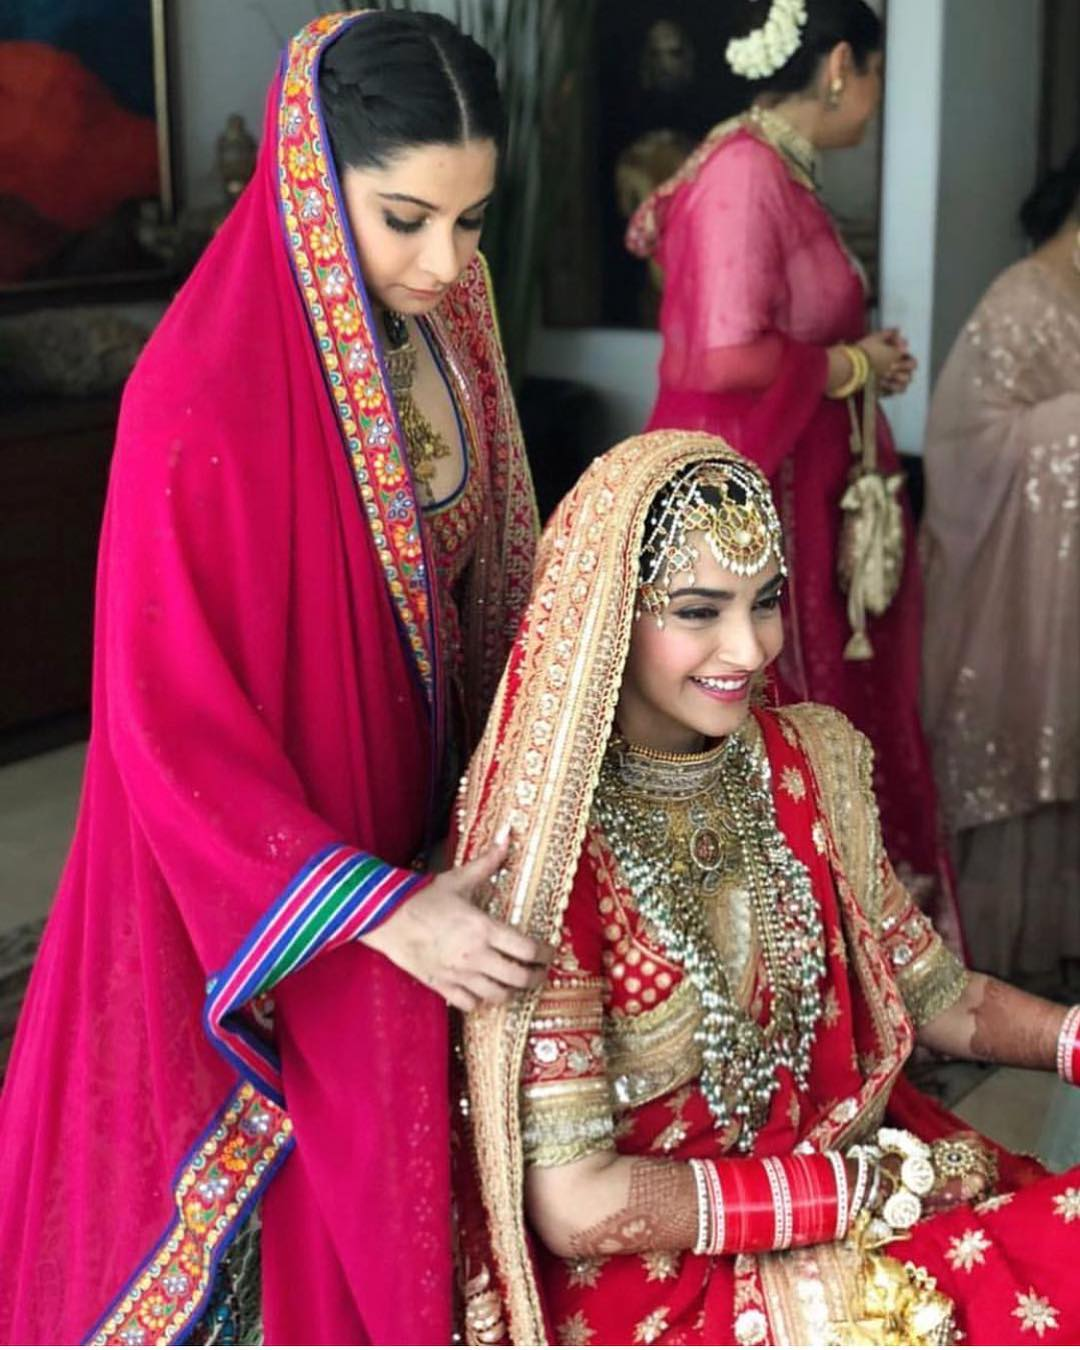 21-2 Sonam Kapoor Wedding Pics - Engagement and Complete Wedding Pictures